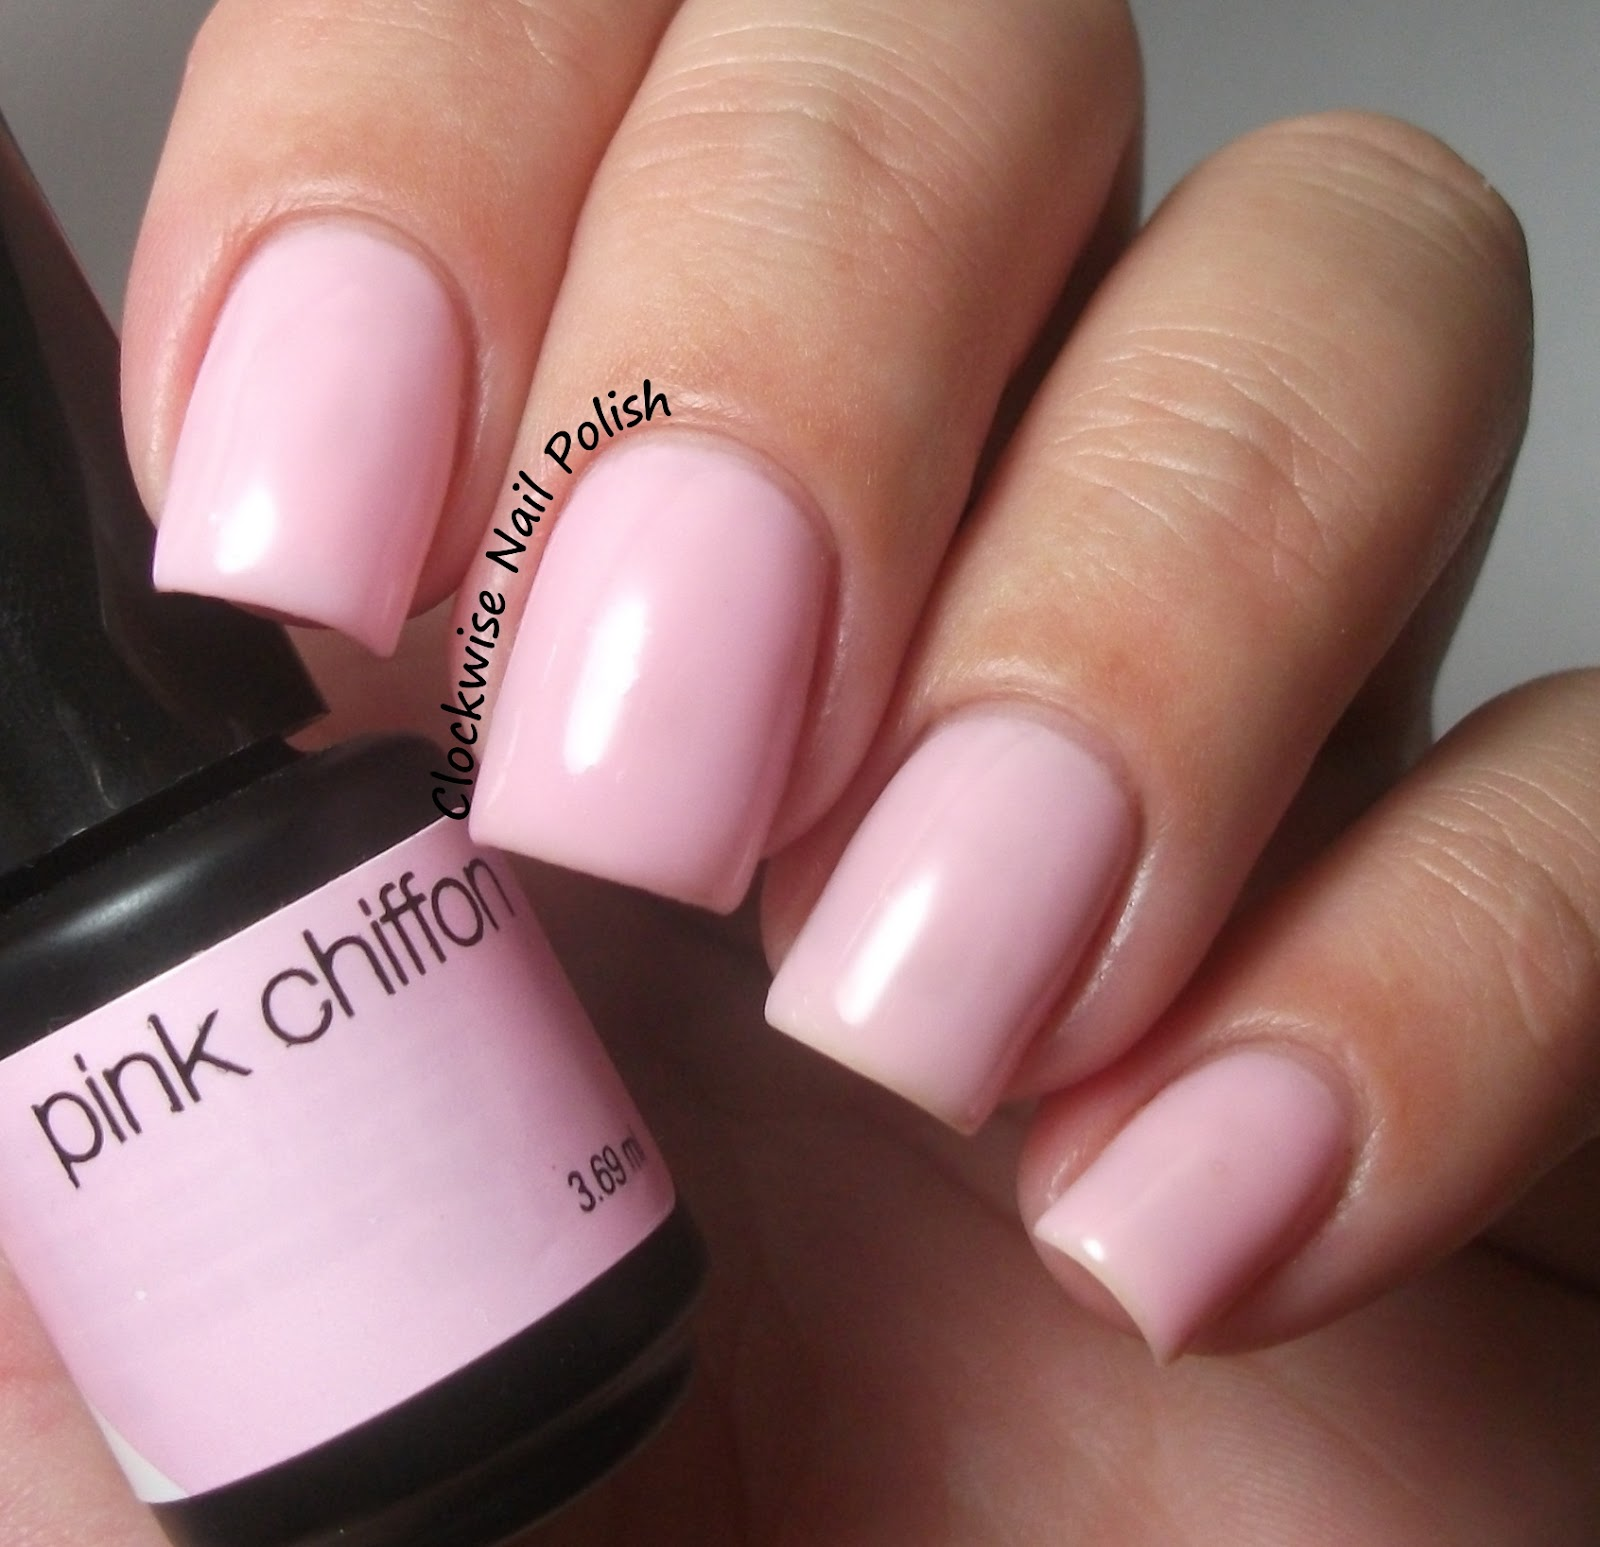 About The T Cancer Awareness Manicure